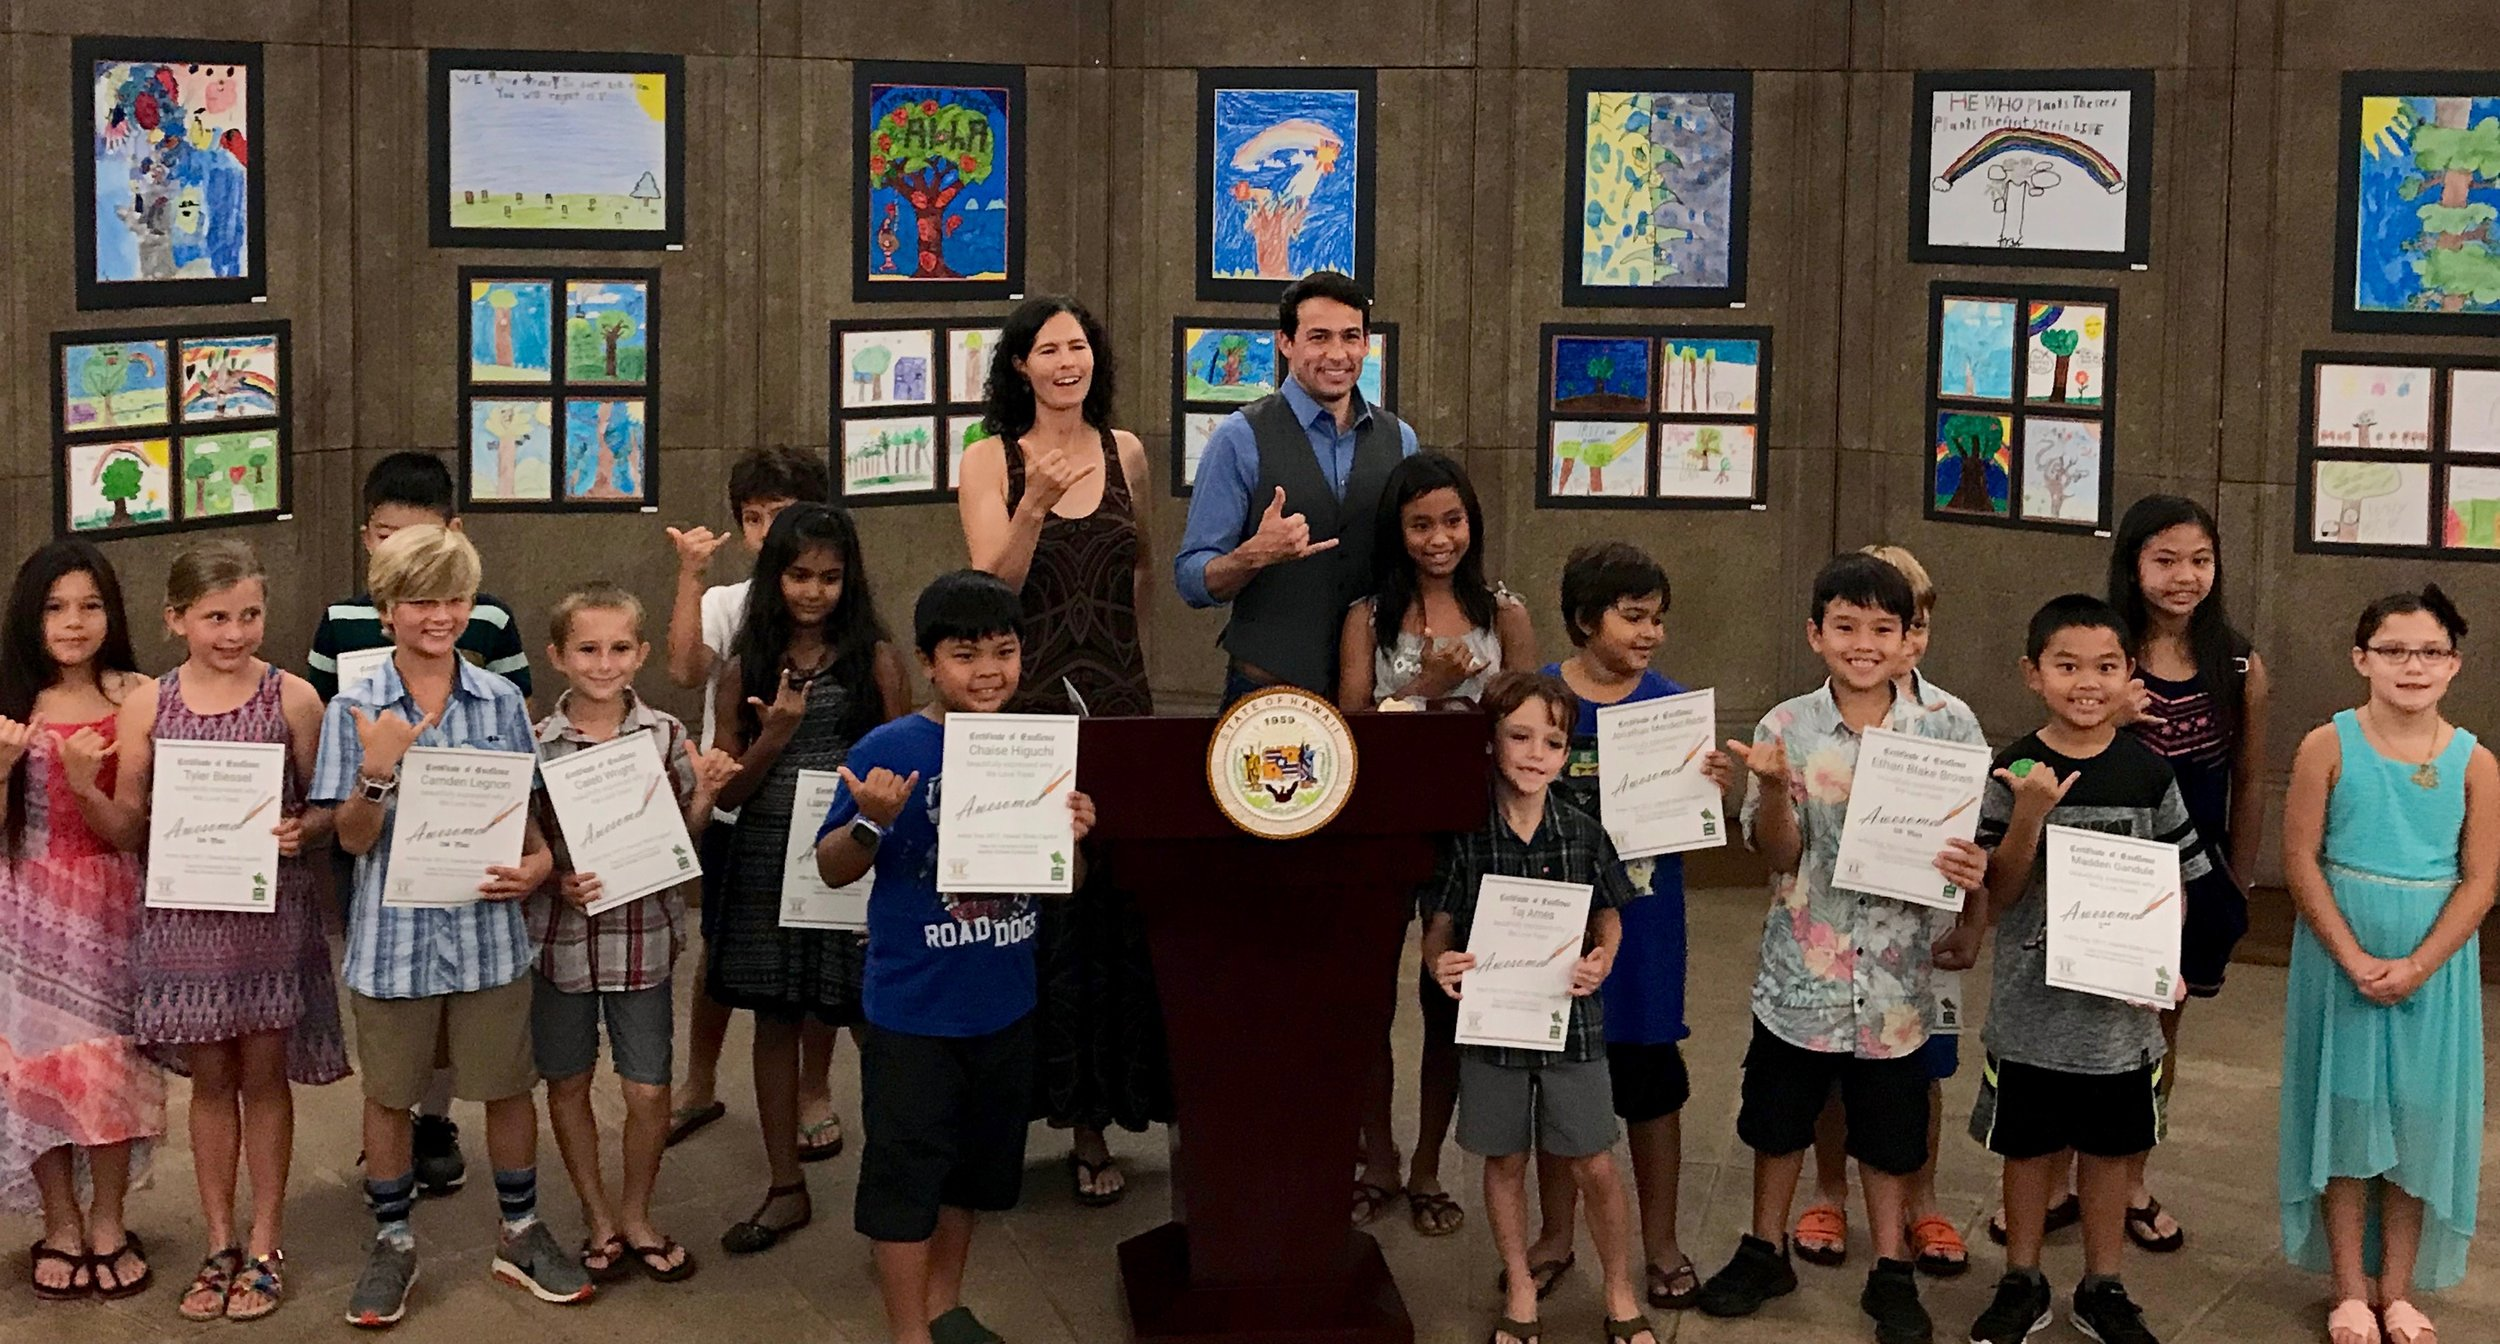 Arbor Day poster contest 2017 at the State Capitol